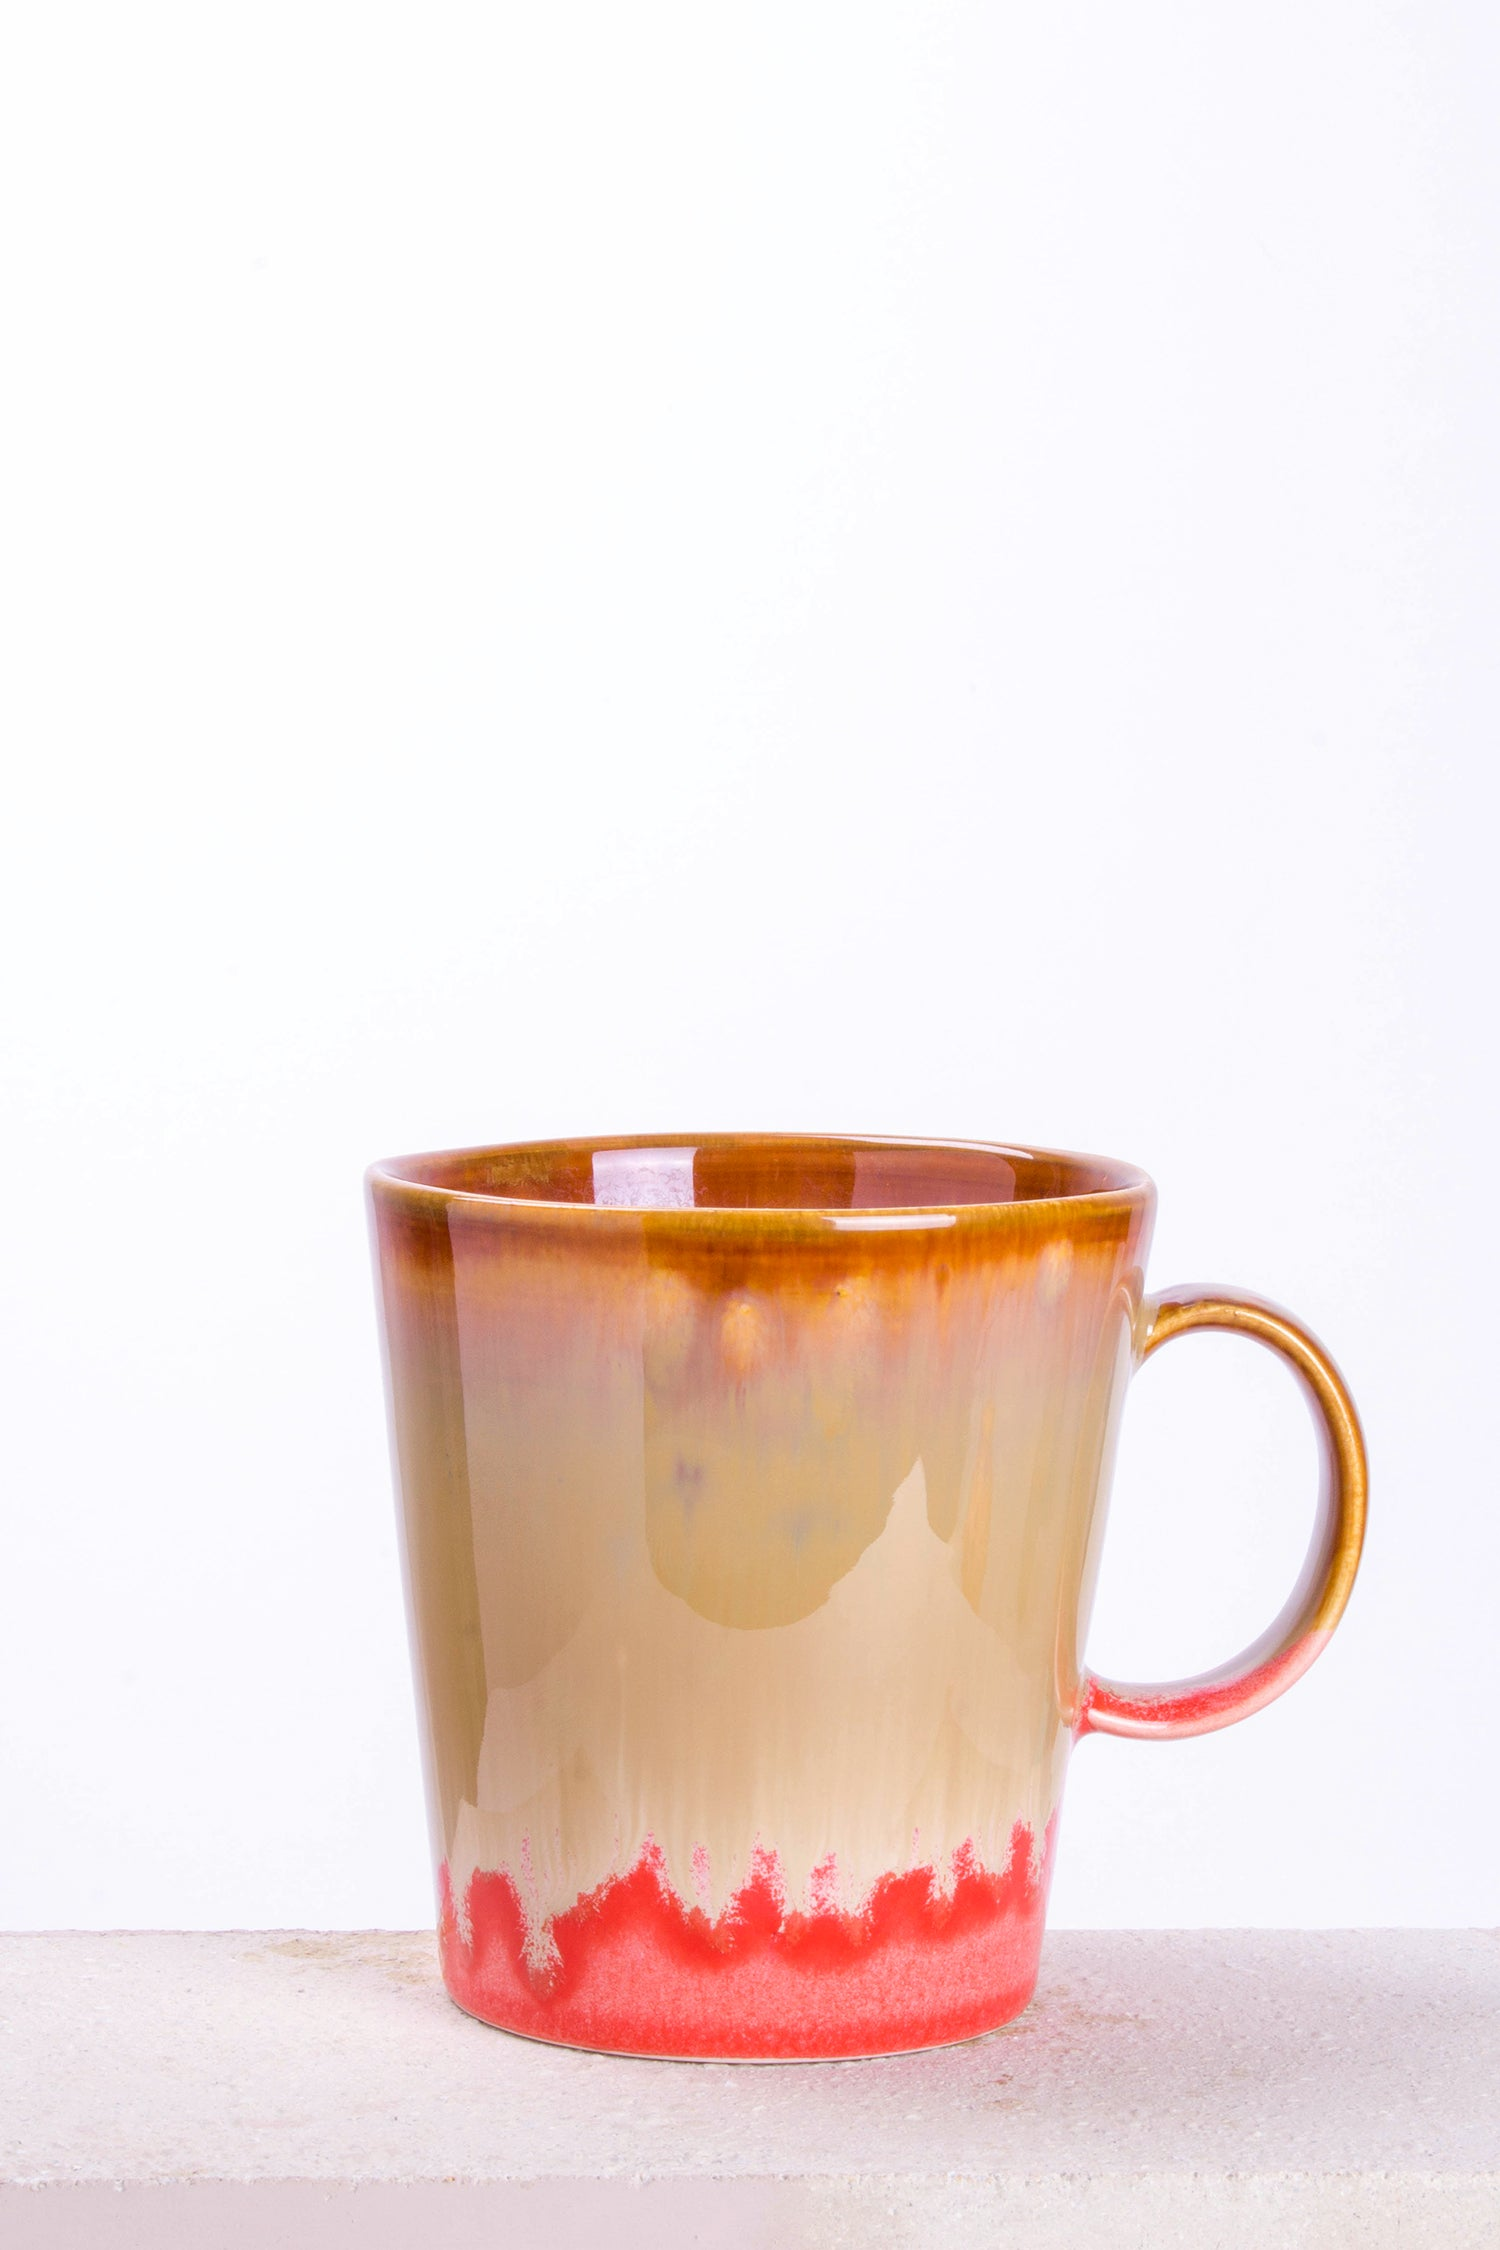 SGW LAB MUG - WATERMELON CAPPUCCINO